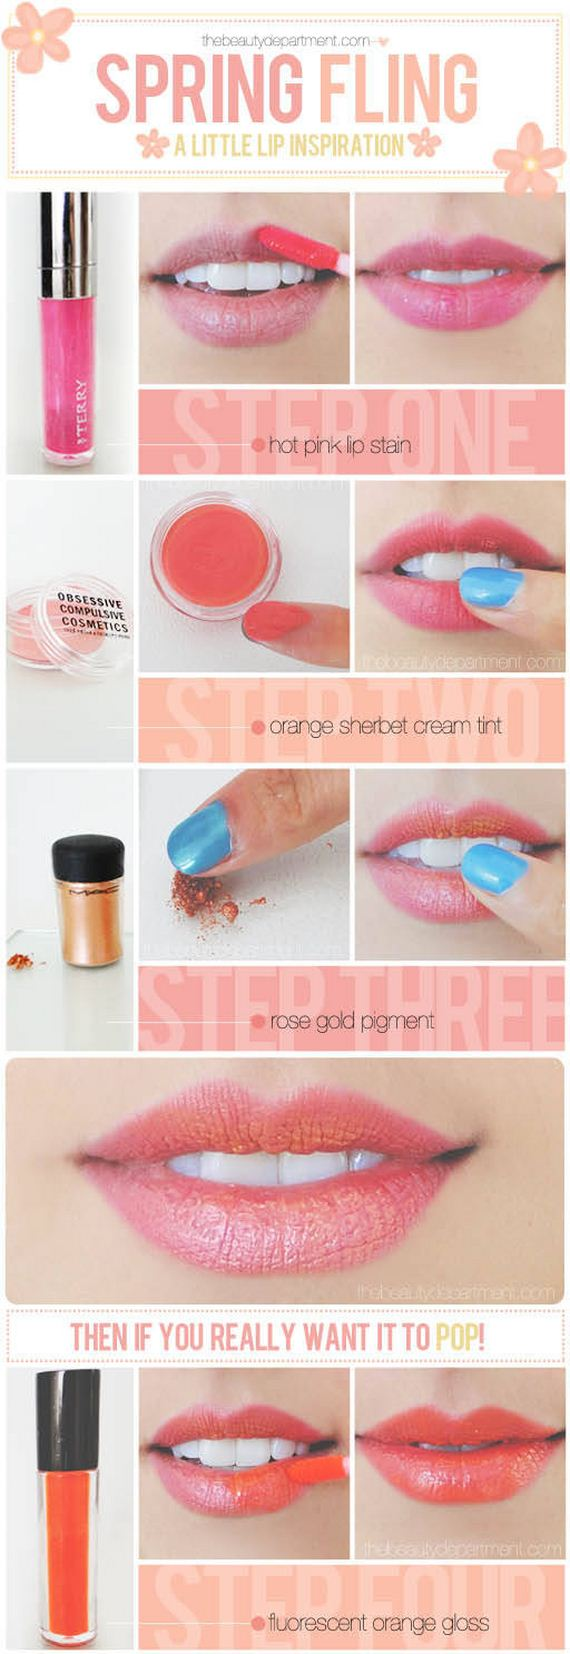 05-Ways-To-Make-Your-Lips-Look-Perfect